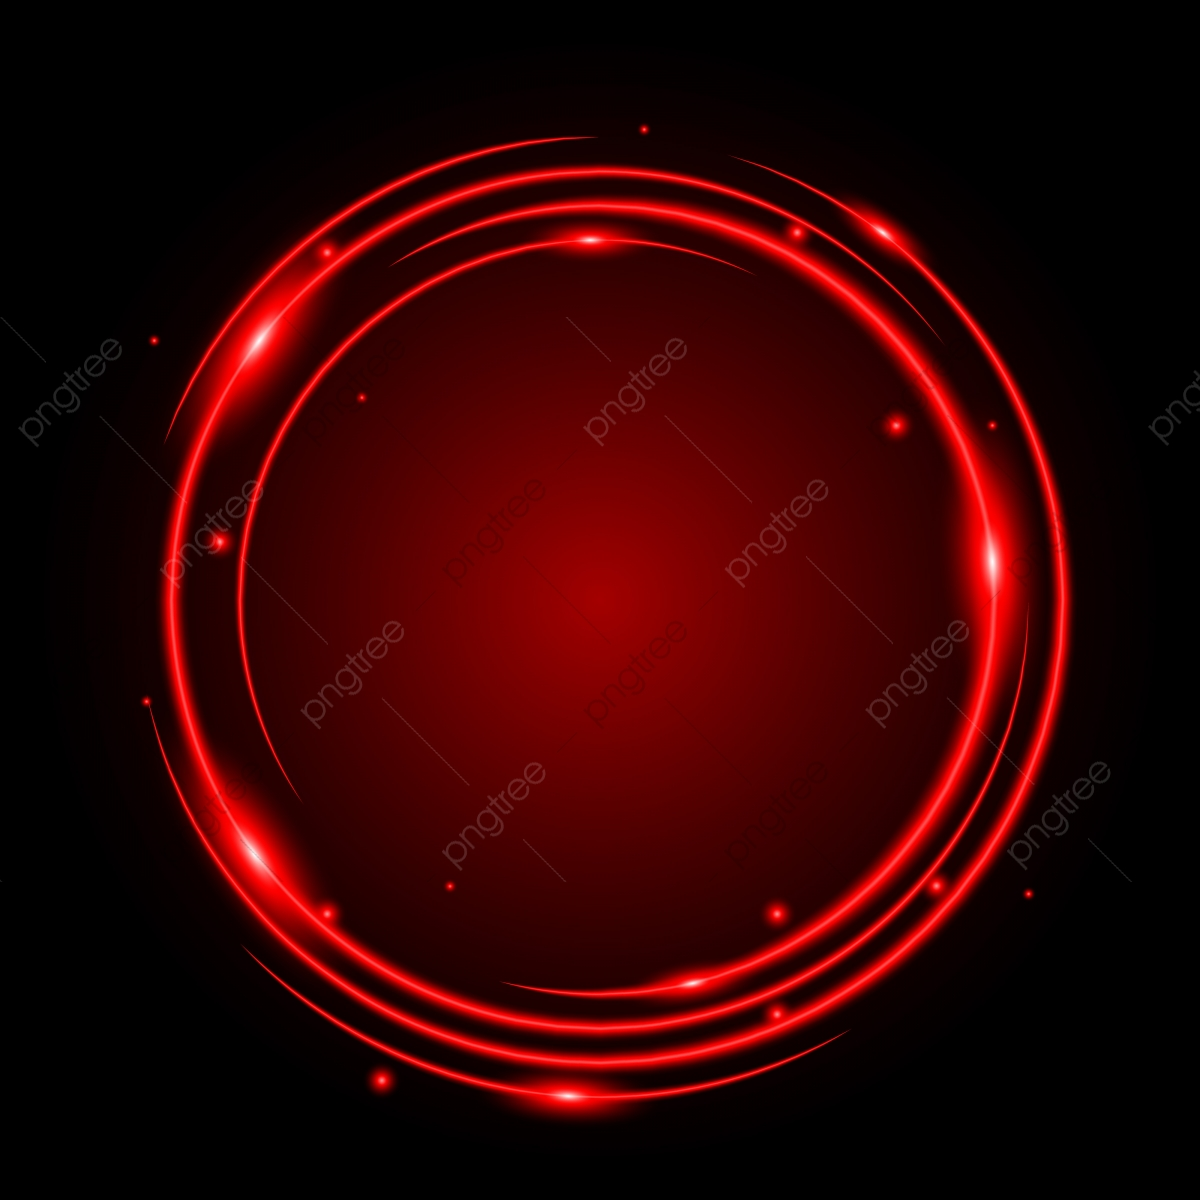 Abstract Circle Light Red Frame Vector Background, Red